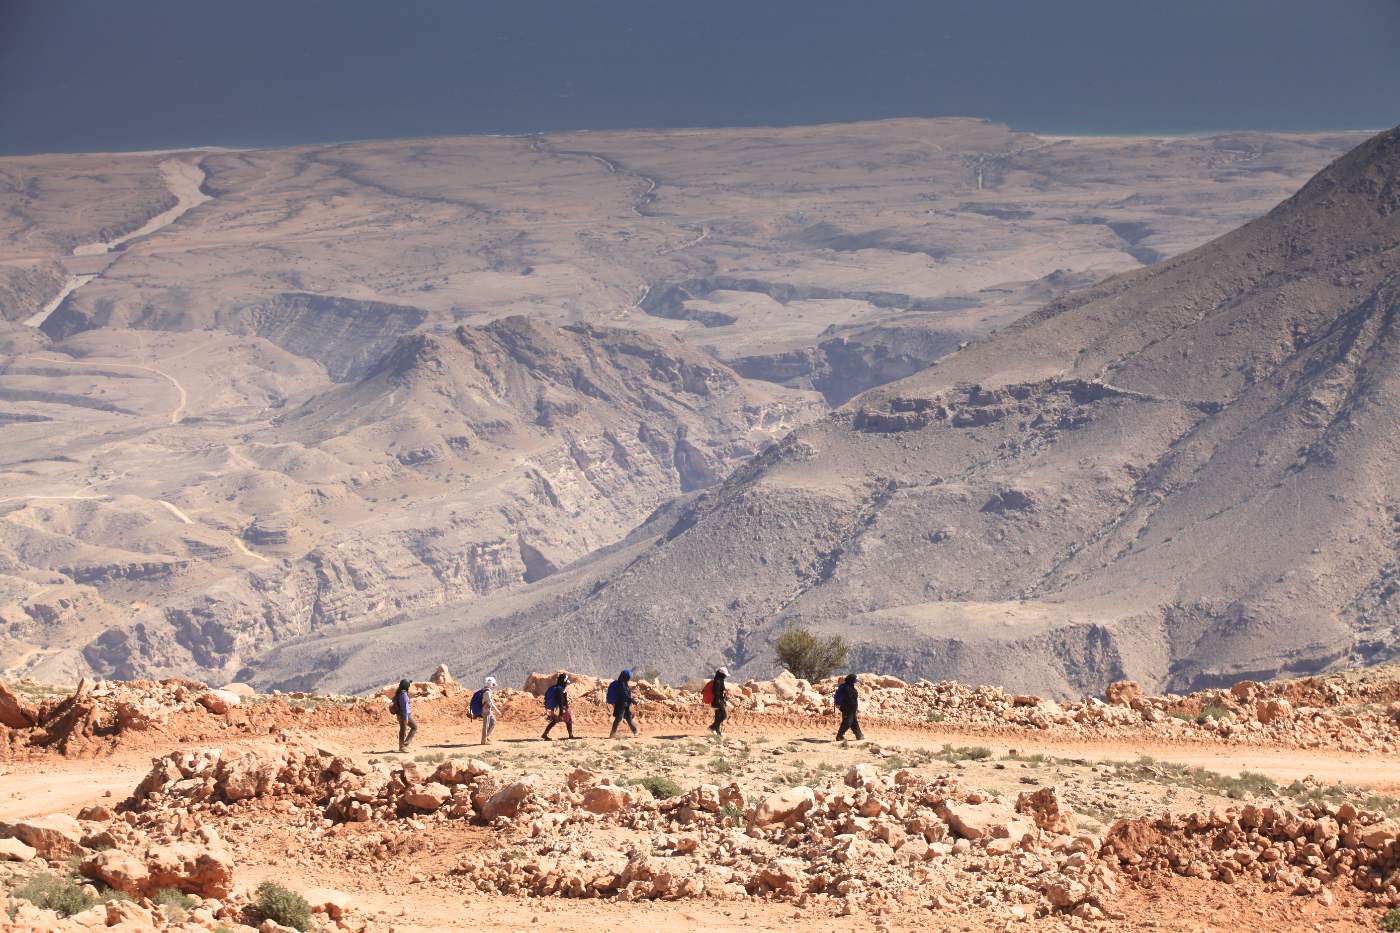 Six people trekking through the desert in Oman, with mountainous range in the background.